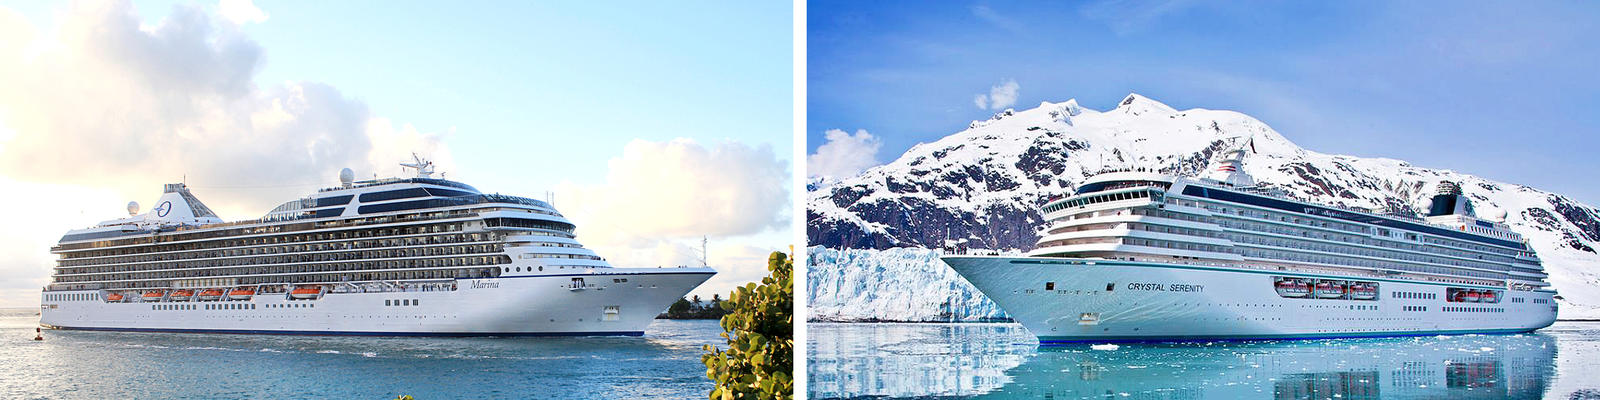 Oceania vs. Crystal Cruises (Photo: Oceania & Crystal)